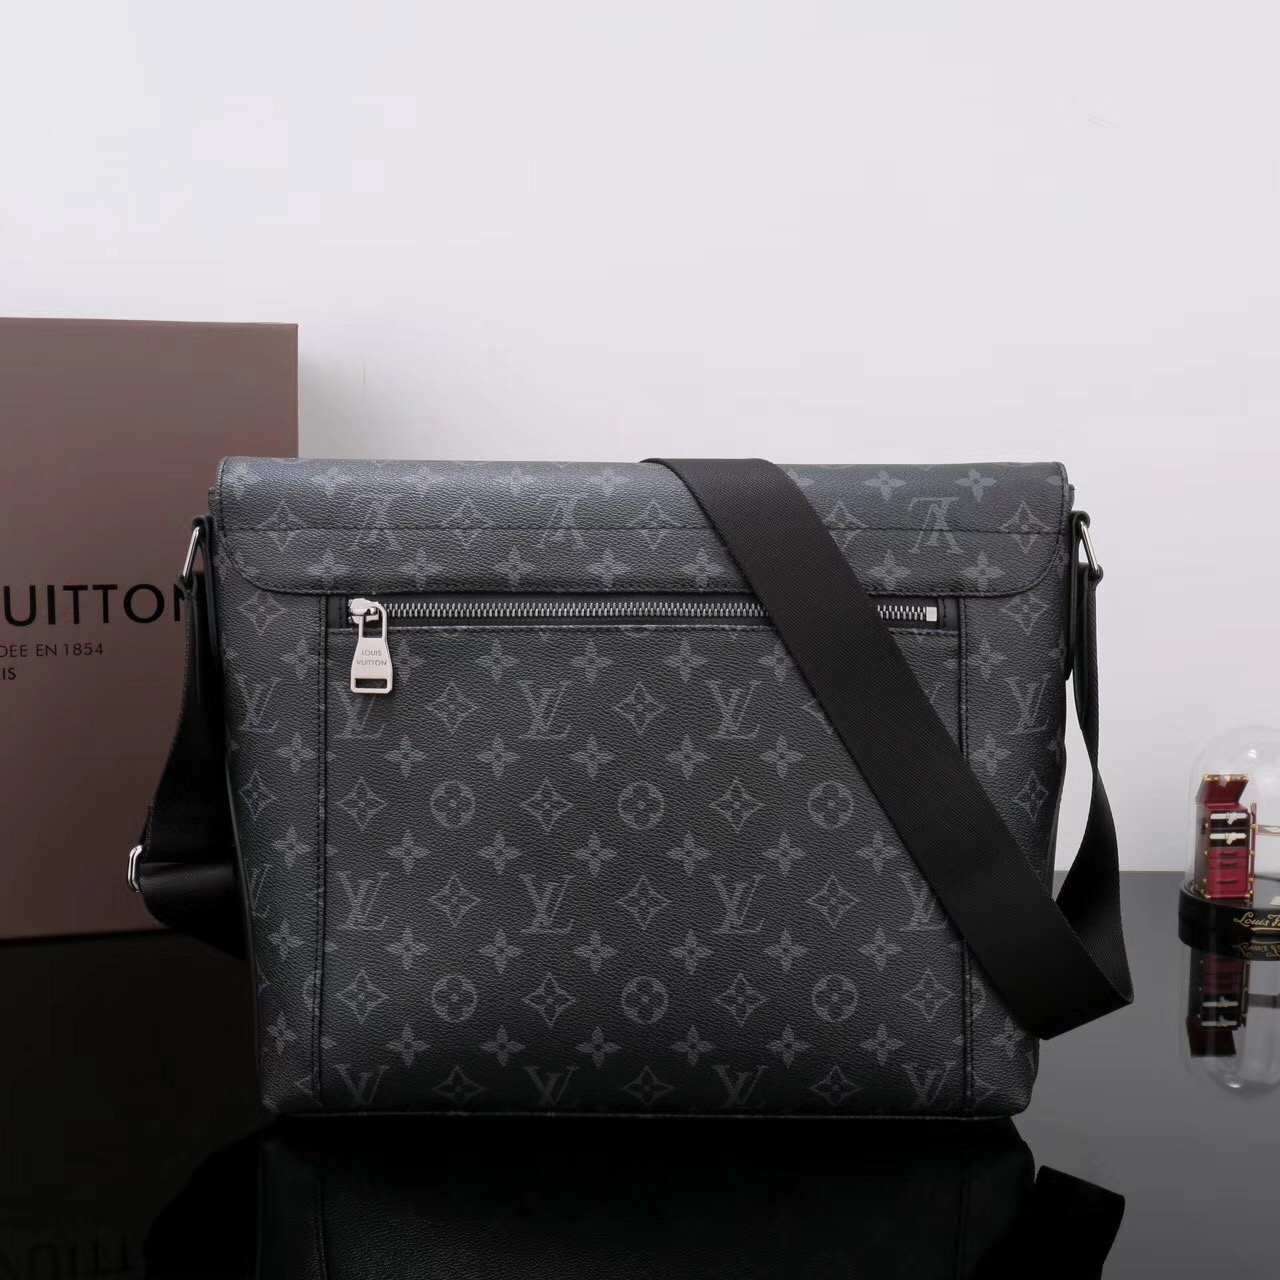 107a2fc220b0 ... Men LV Louis Vuitton M40539 Monogram Messenger bags Handbags Gray ...